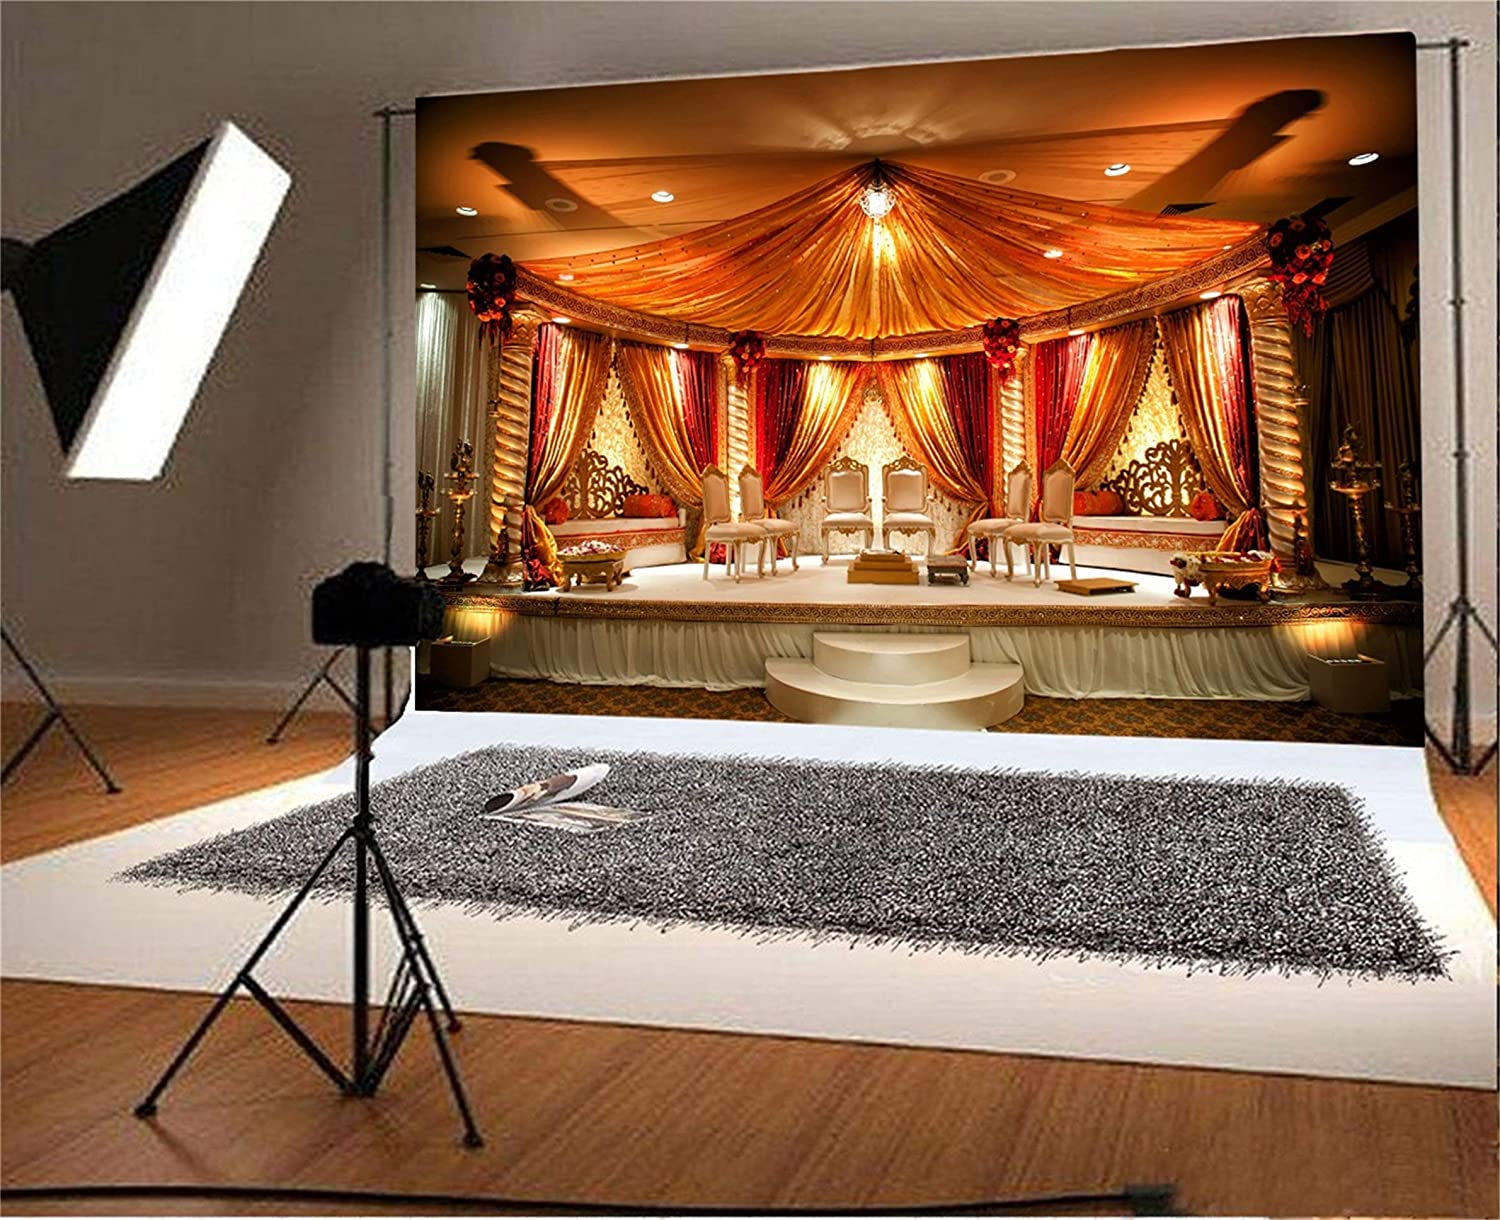 10x12 FT Backdrop Photographers,Tribal Composition with Oriental Arabesque Motifs Inspired Swirl and Circles Background for Baby Shower Birthday Wedding Bridal Shower Party Decoration Photo Studio